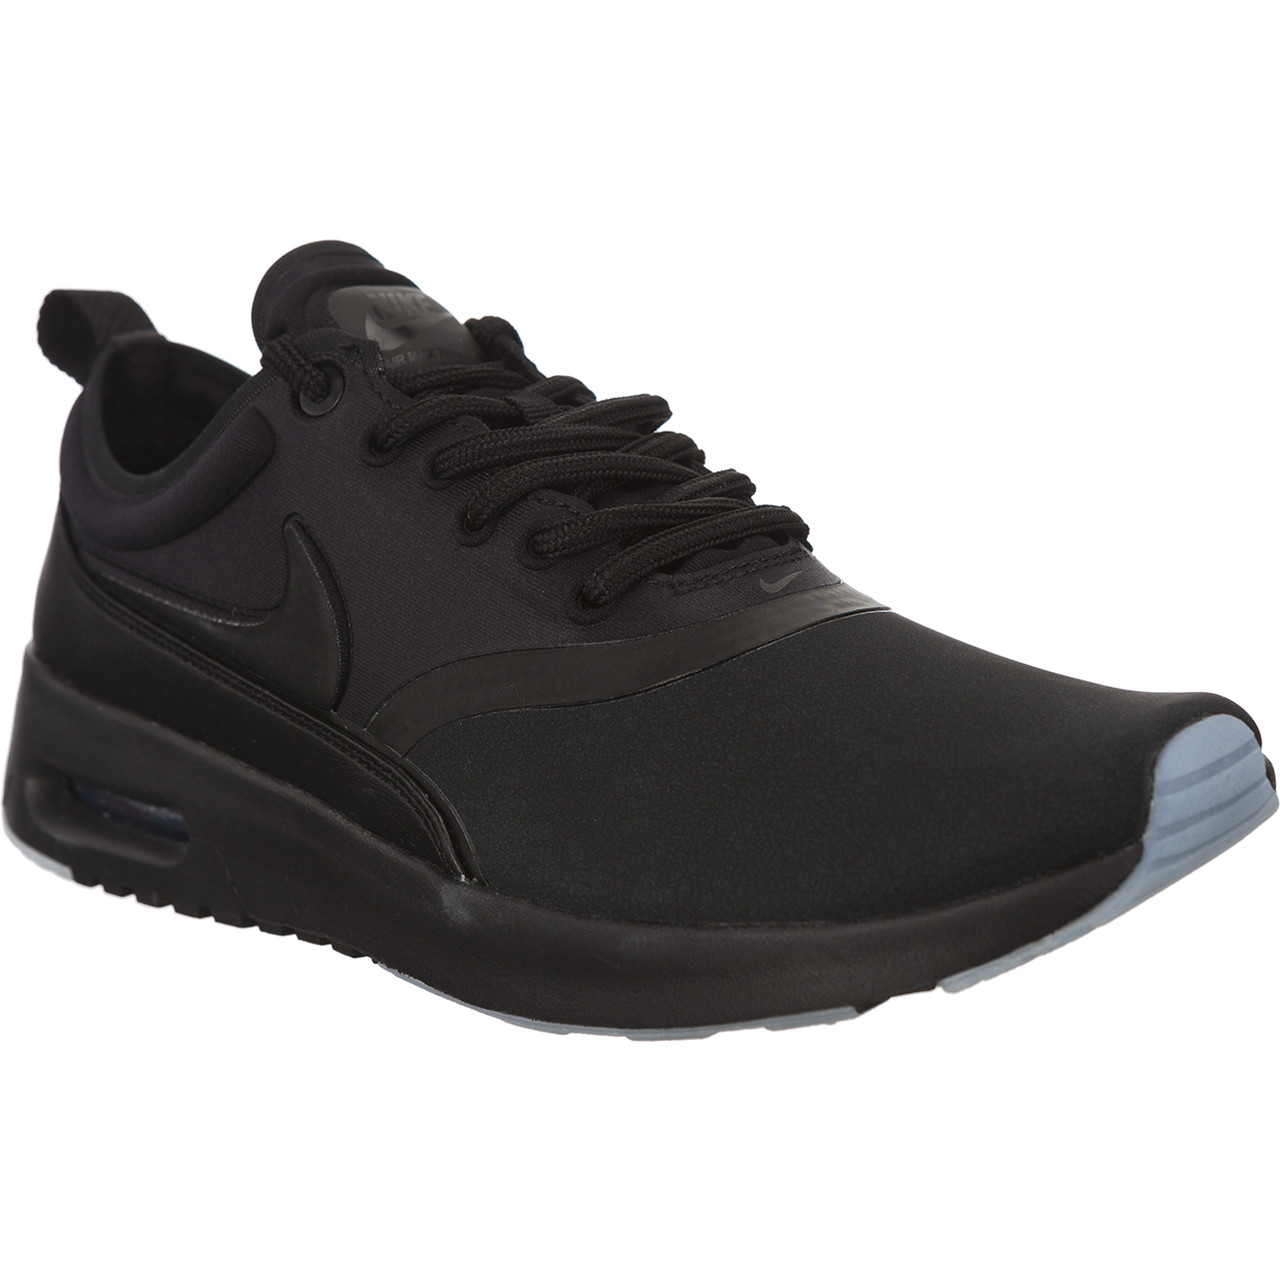 Buty Nike W Air Max THEA ULTRA PRM 005 eastend.pl